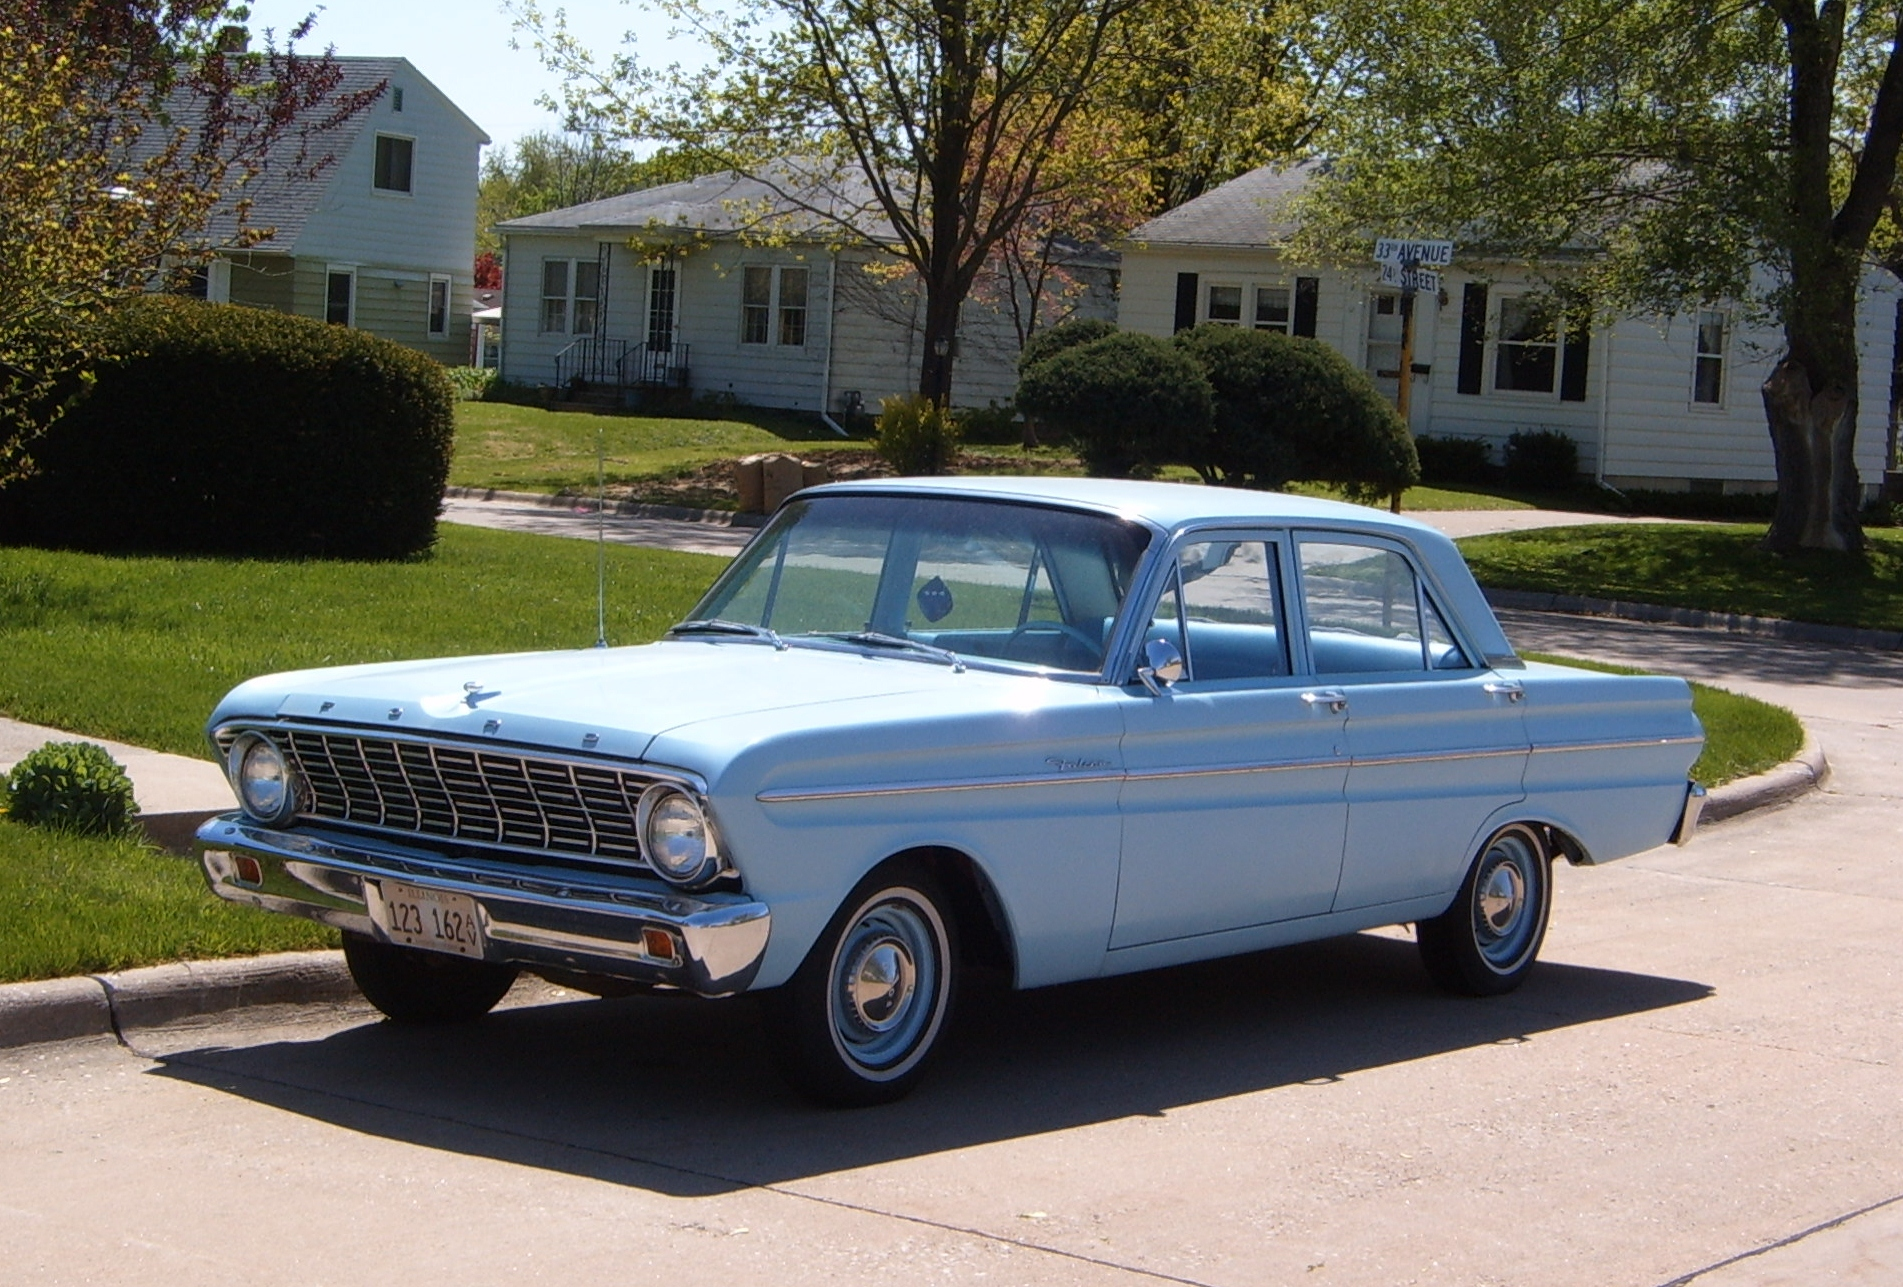 Curbside Classic 1964 Ford Falcon Plain And Simple